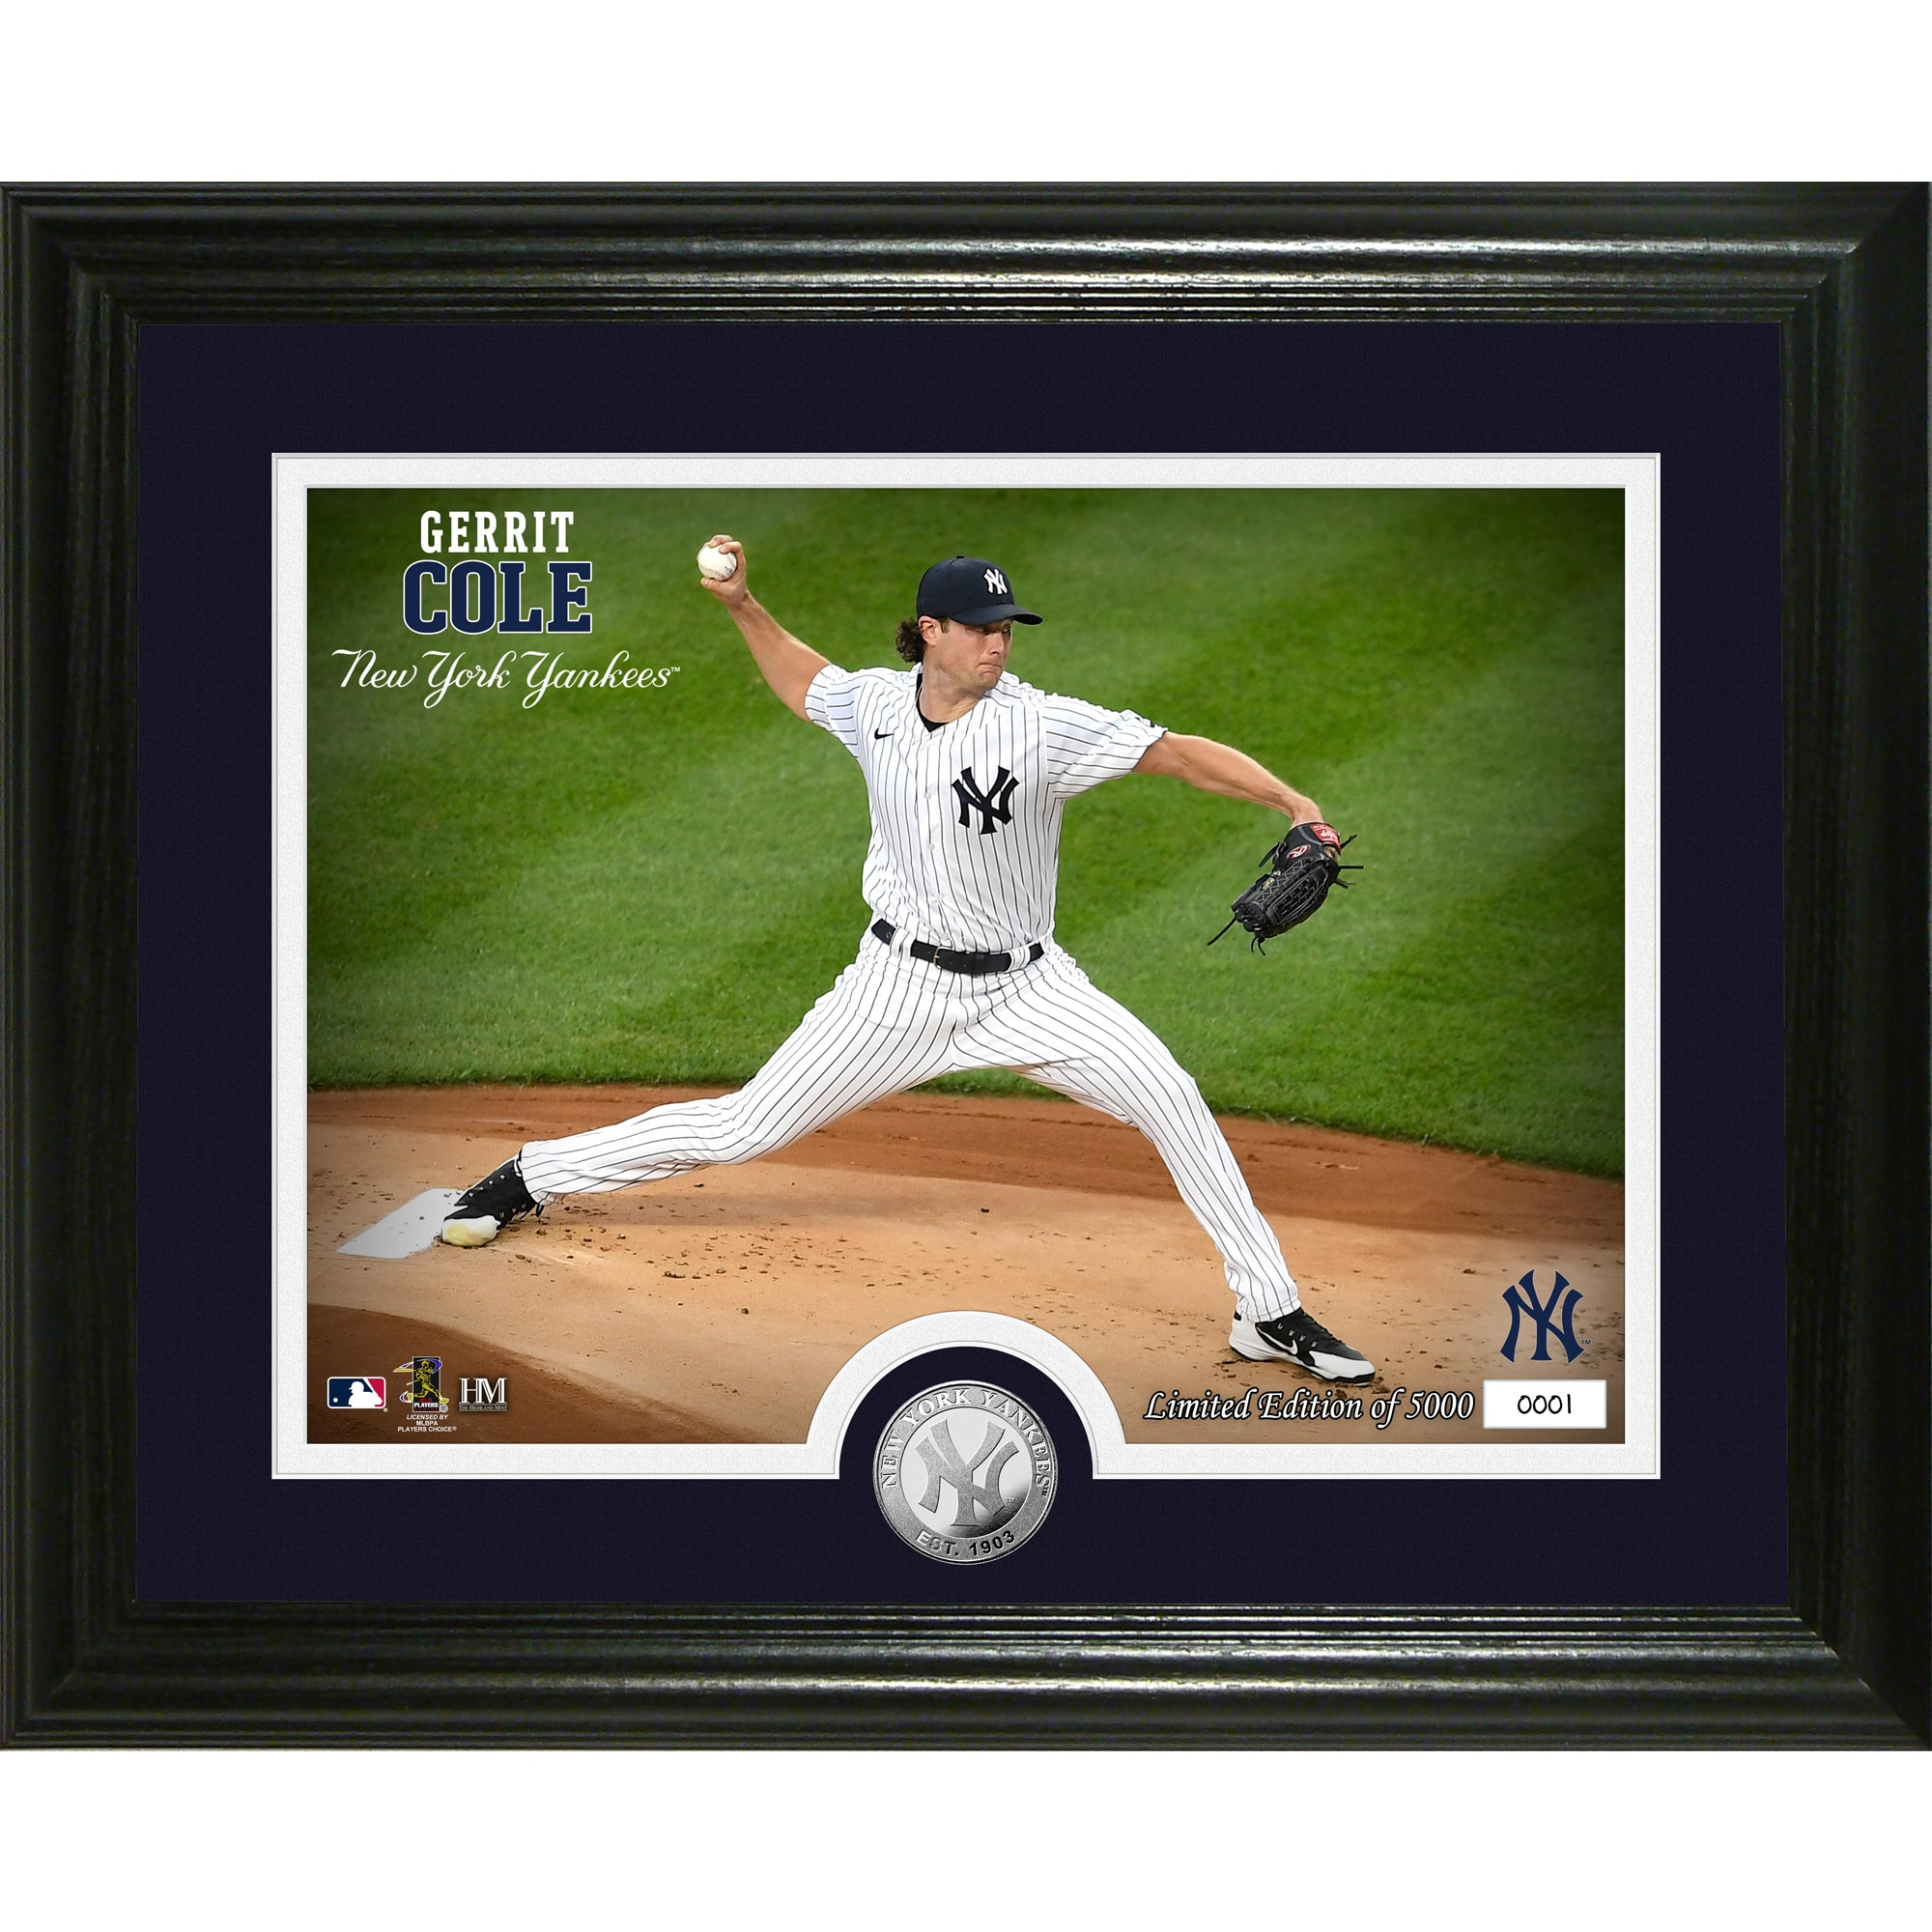 "Gerrit Cole New York Yankees Highland Mint 13"" x 16"" Yankee Stadium First Start Silver Coin Photo Mint"